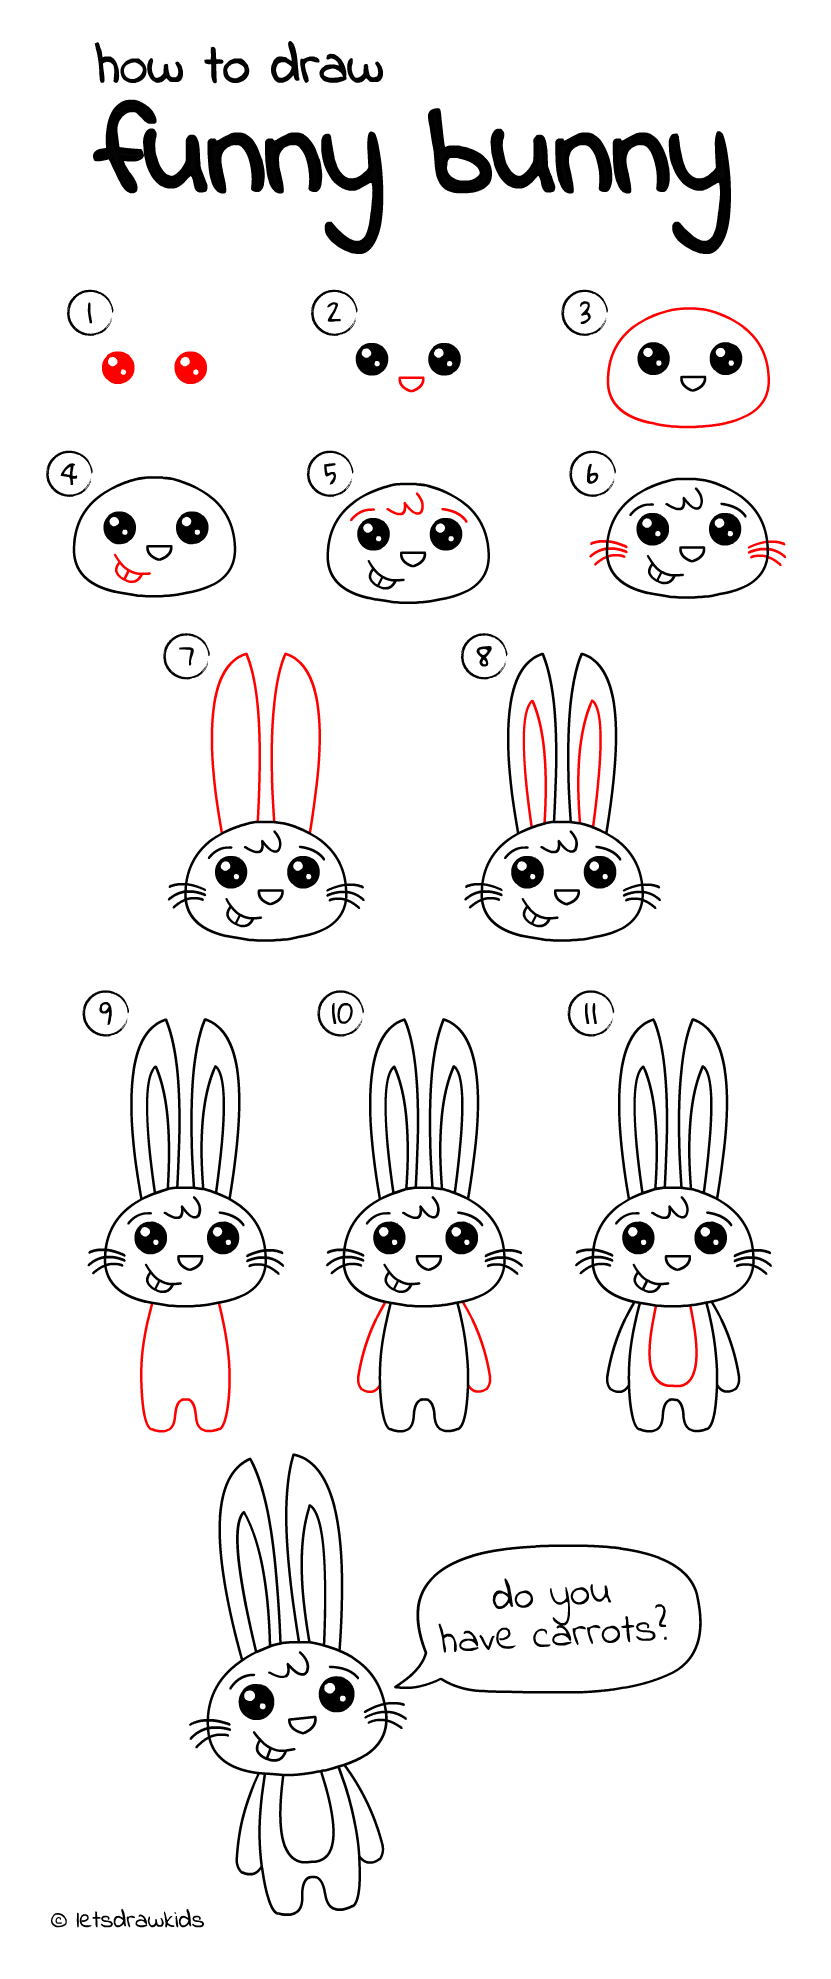 How to draw funny bunny easy drawing step by step perfect for kids